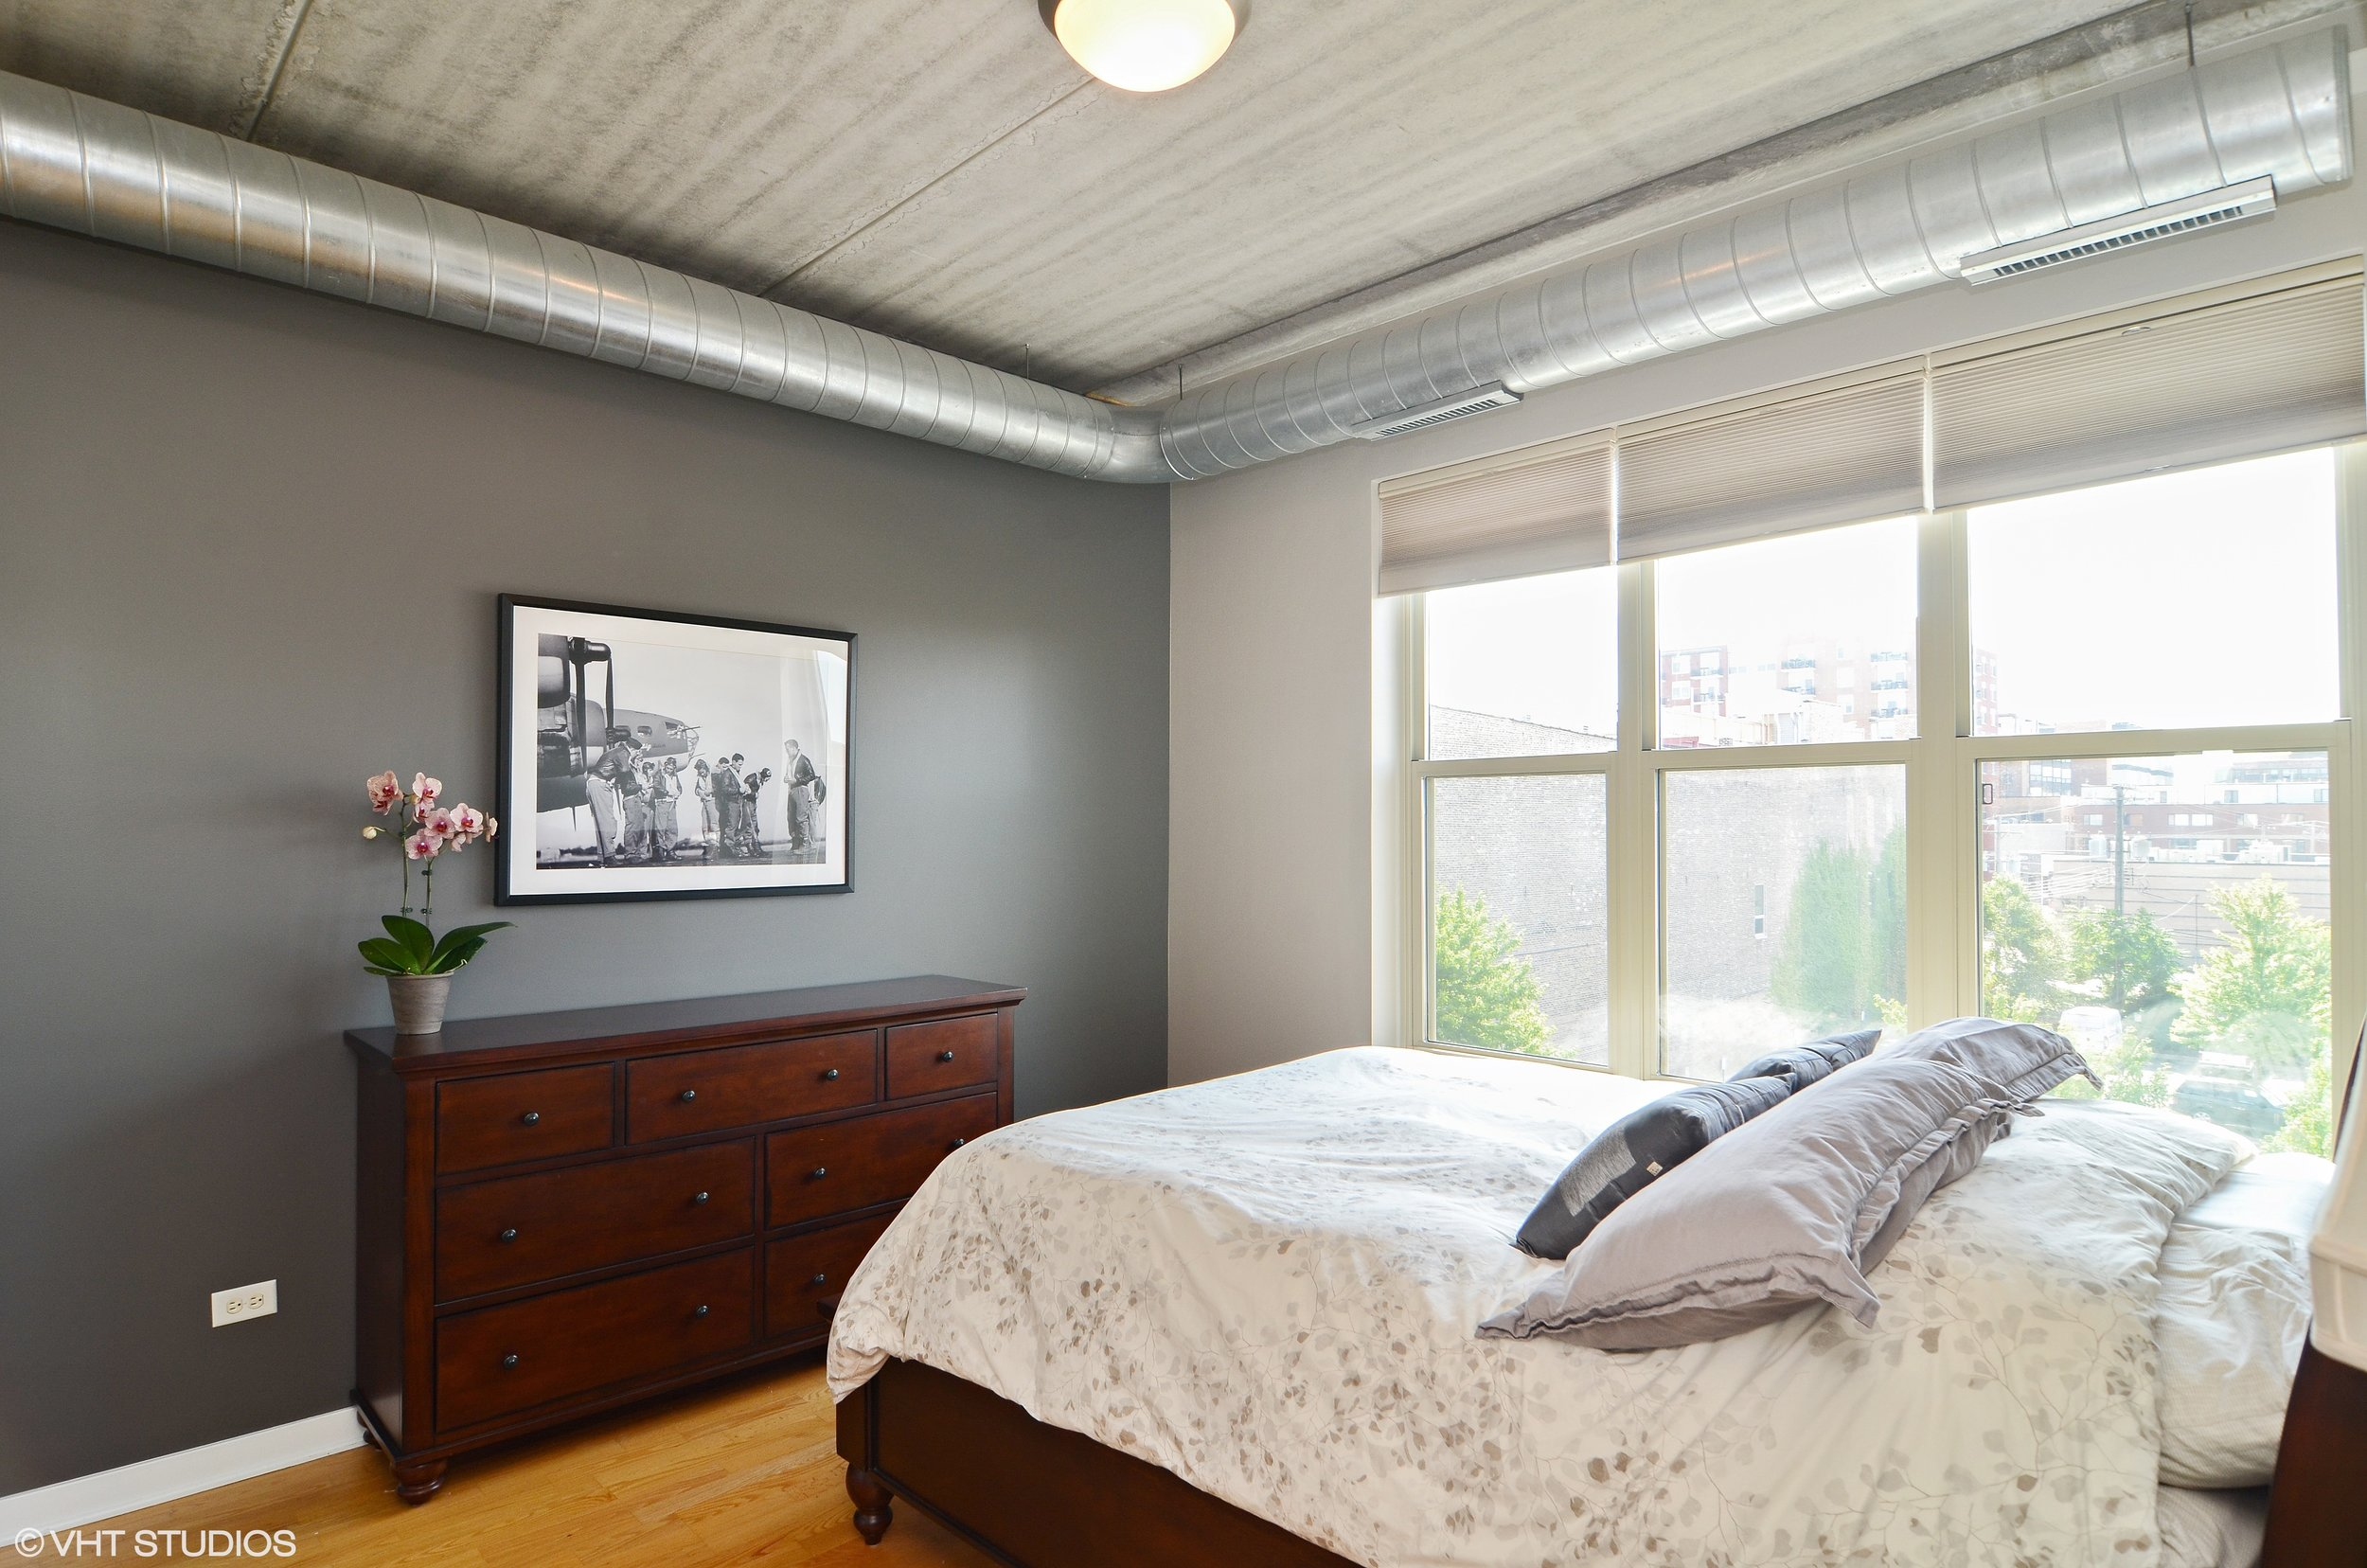 3_1228WMonroe_401_14_MasterBedroom_HiRes.jpg